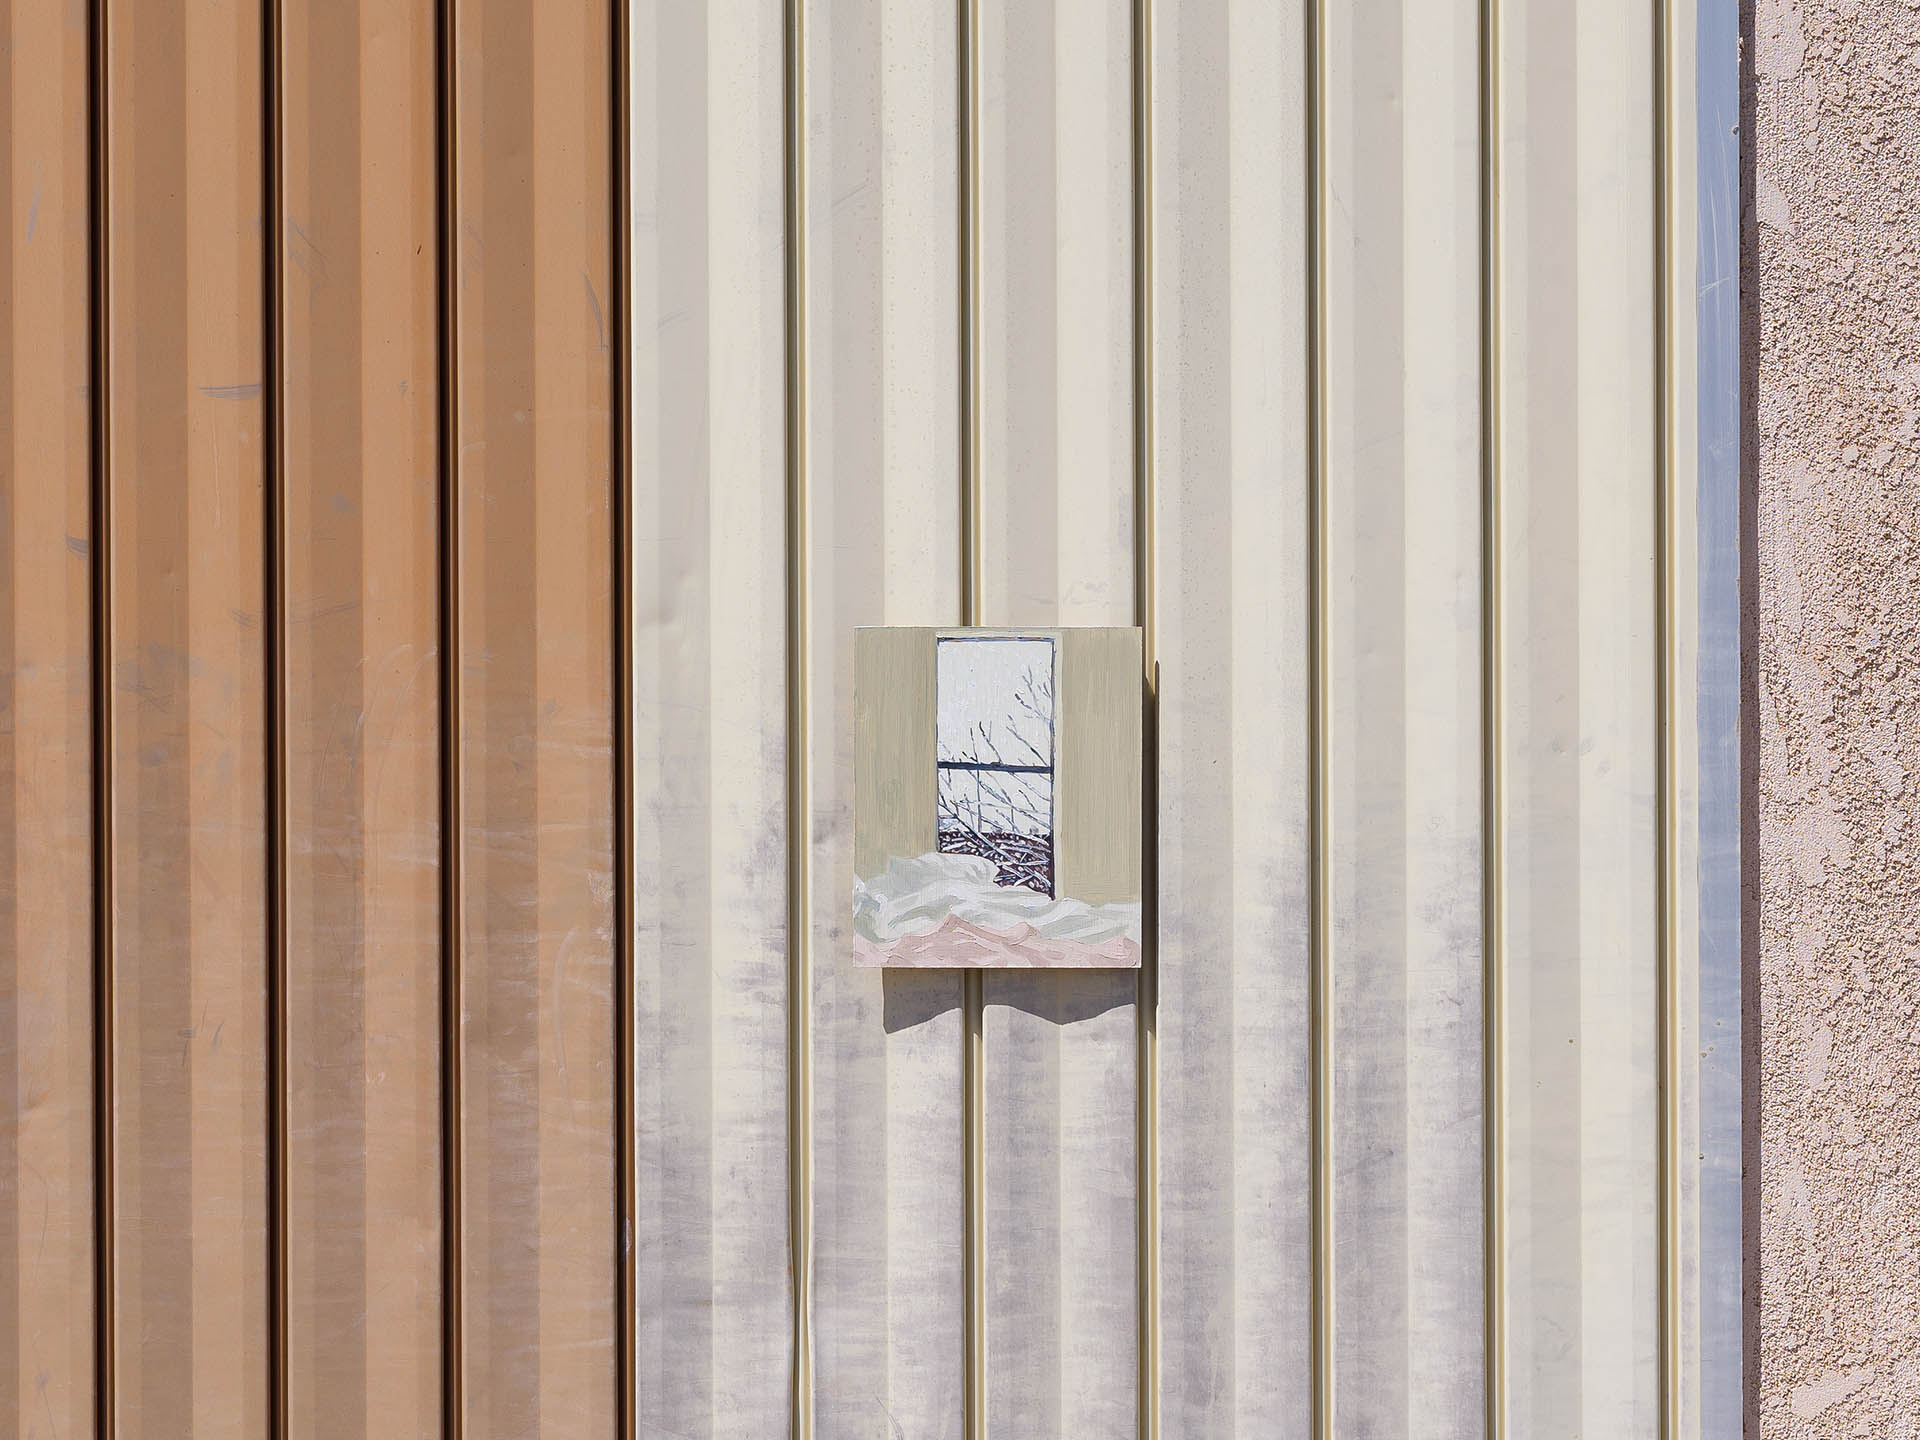 An installation view of Claudia Keep's painting, 9:07 AM, captured by photographer Tag Christof in the Western United States in 2021 for MARCH. The image shows a painting hung outside on a pink facade.